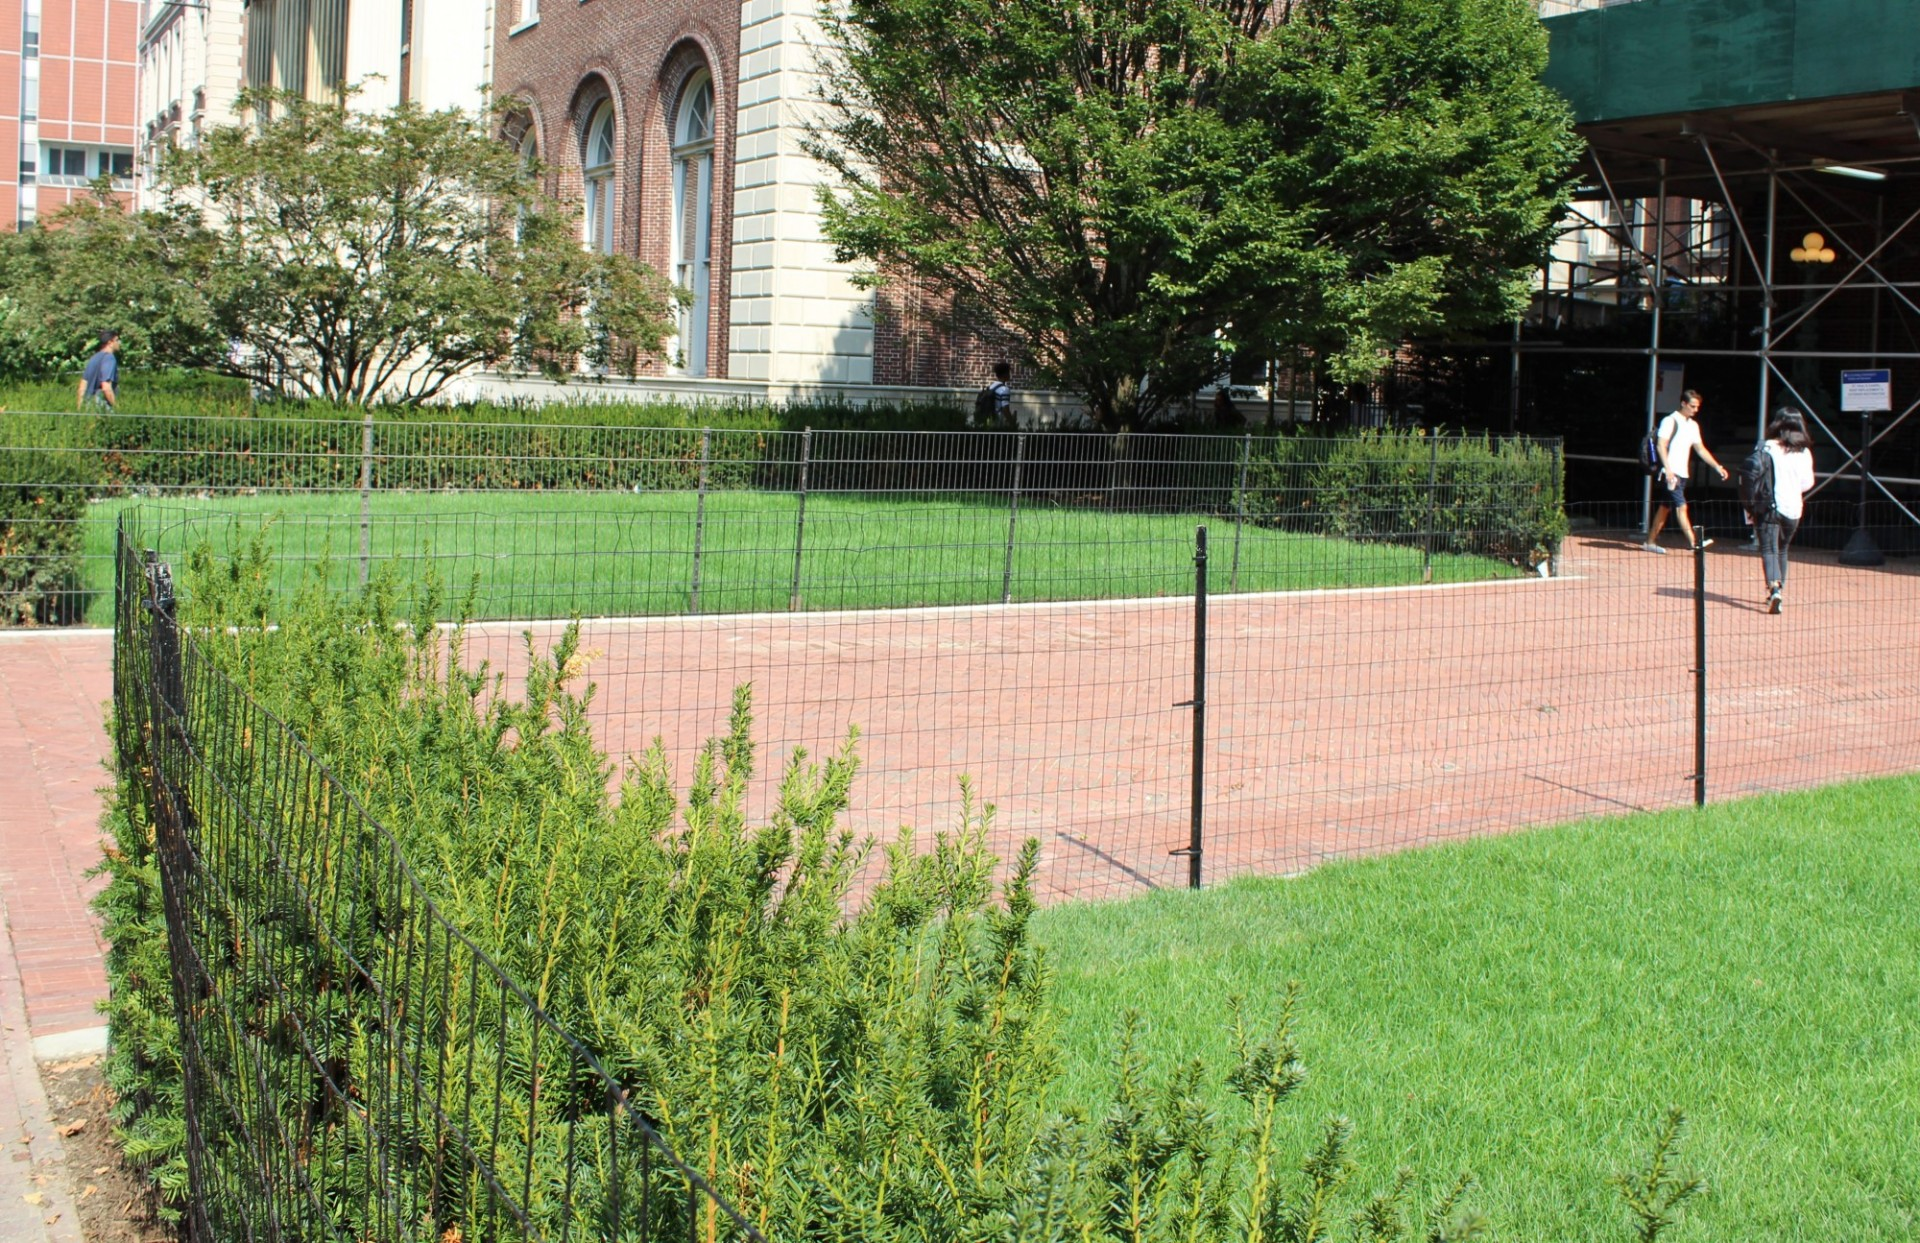 St. Paul's Chapel lawn: Perimeter shrubs around the lawns in front were removed to create more open and welcoming lawn spaces and building entrances